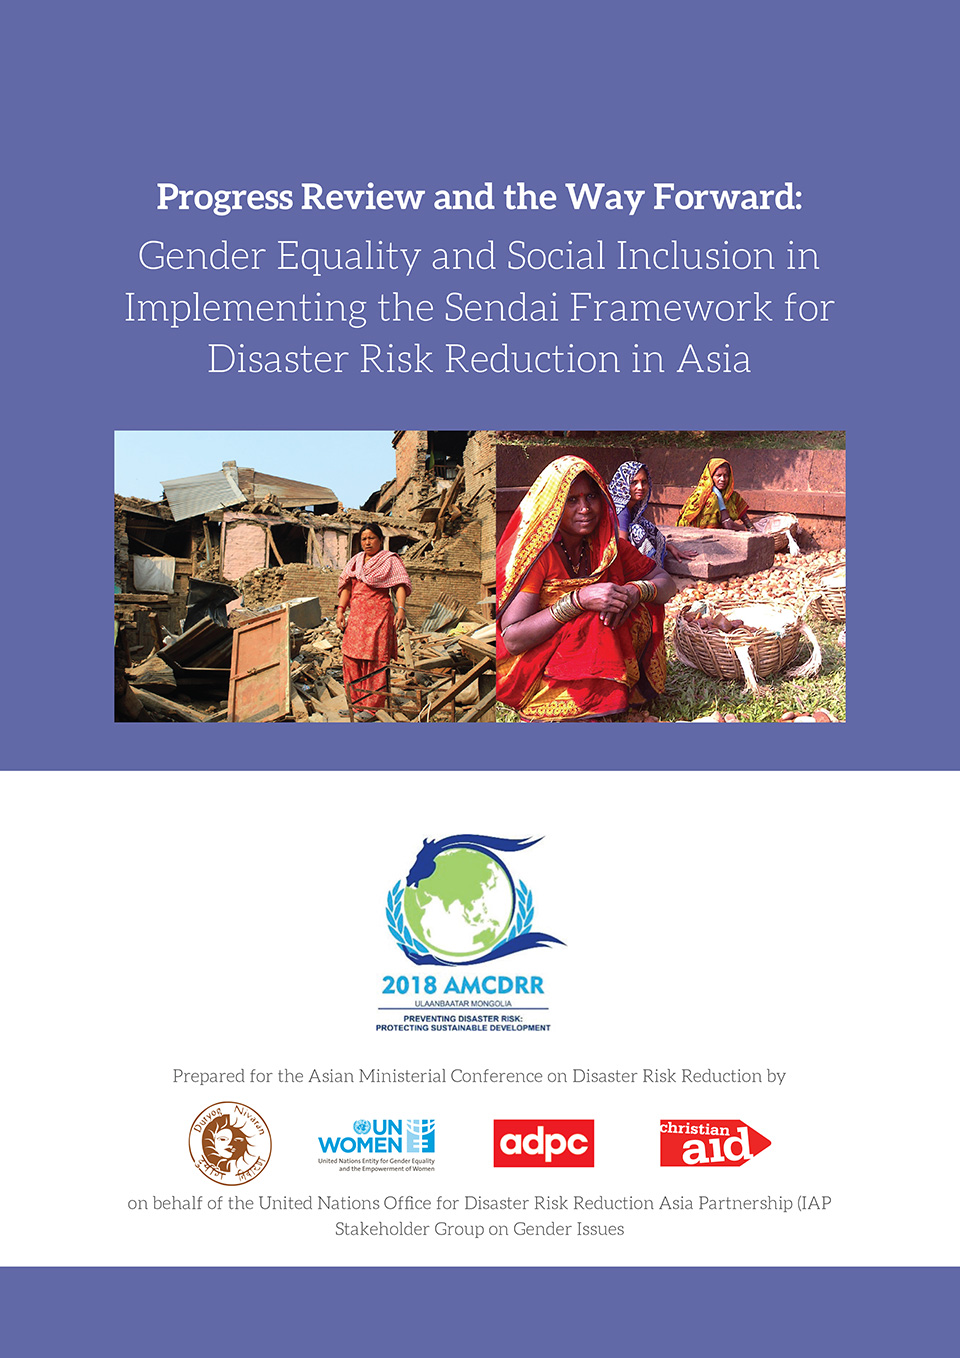 Progress Review and the Way Forward: Gender Equality and Social Inclusion in Implementing the Sendai Framework for Disaster Risk Reduction in Asia